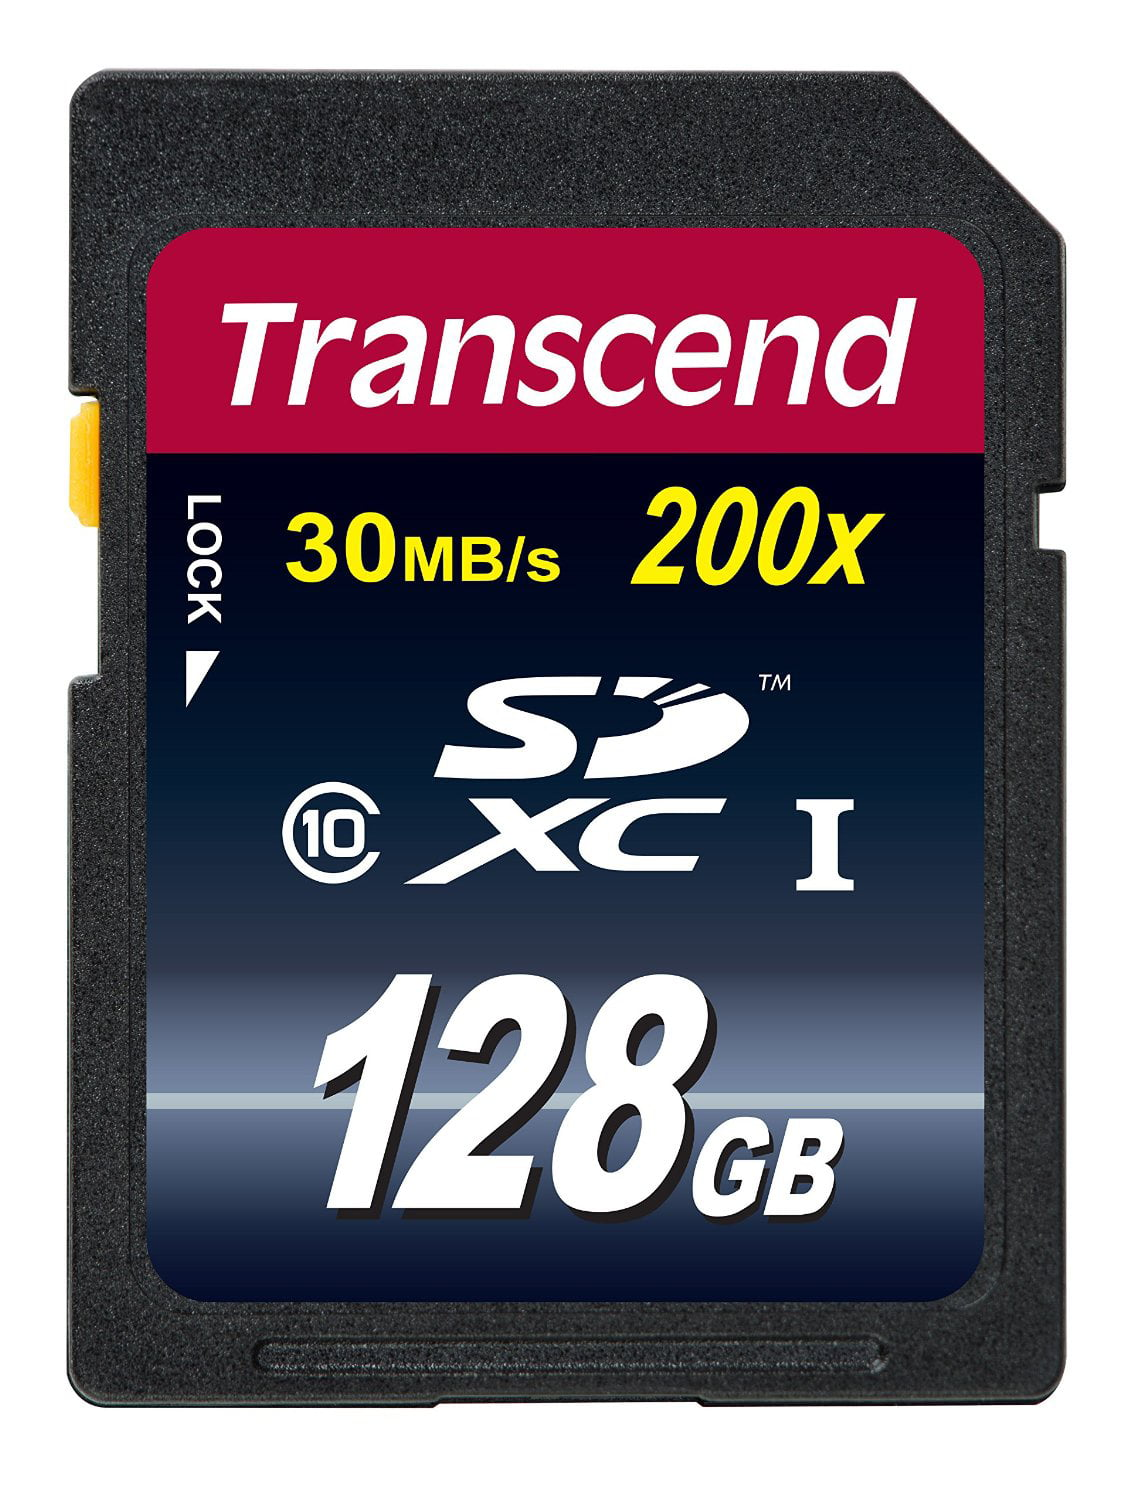 Memory Card 1 Twin Pack SD Kodak C300 Digital Camera Memory Card 2 x 2GB Standard Secure Digital